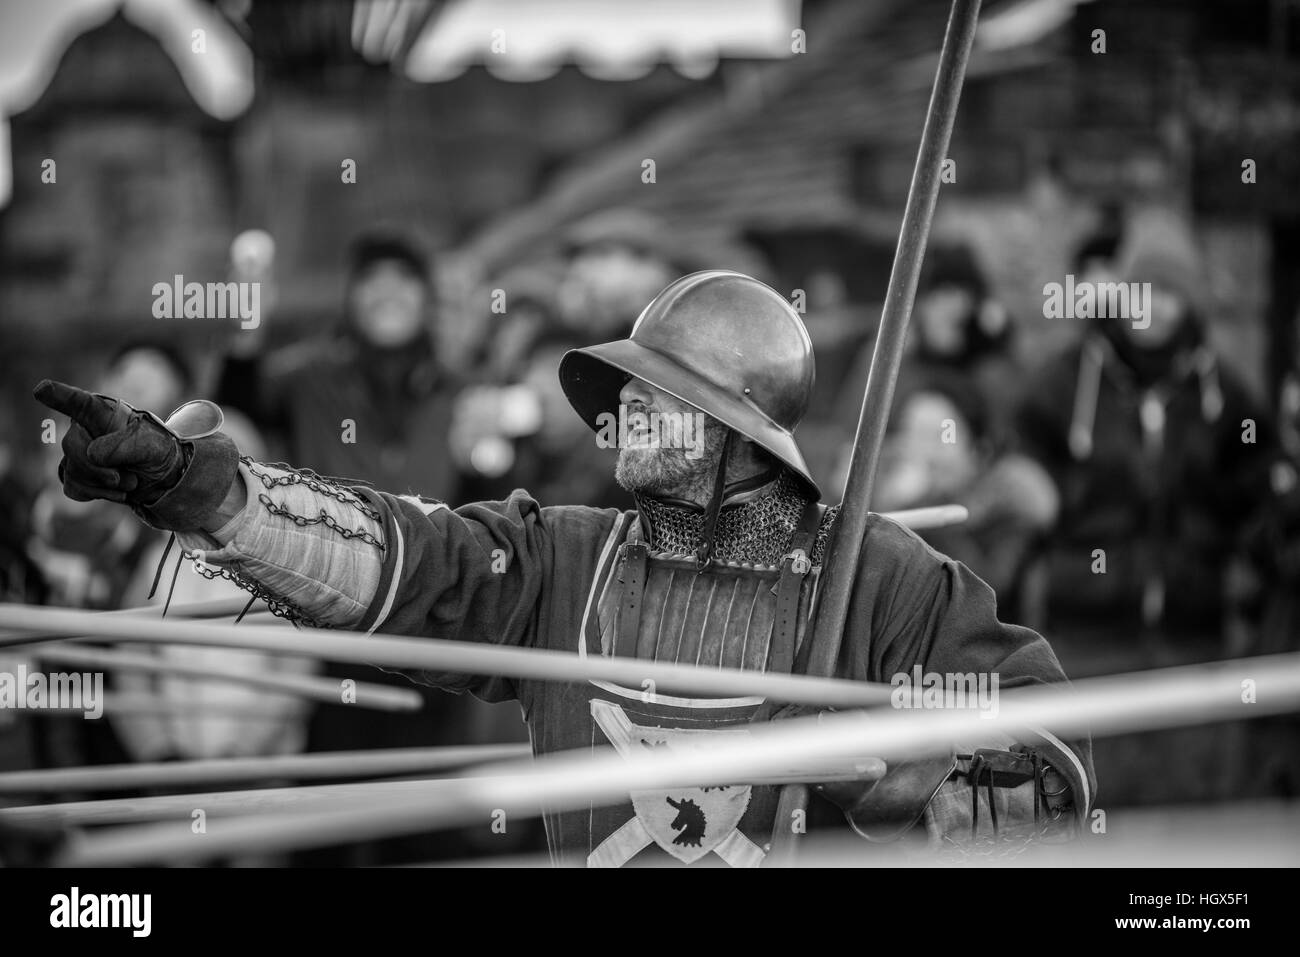 image of a medieval soldier - Stock Image